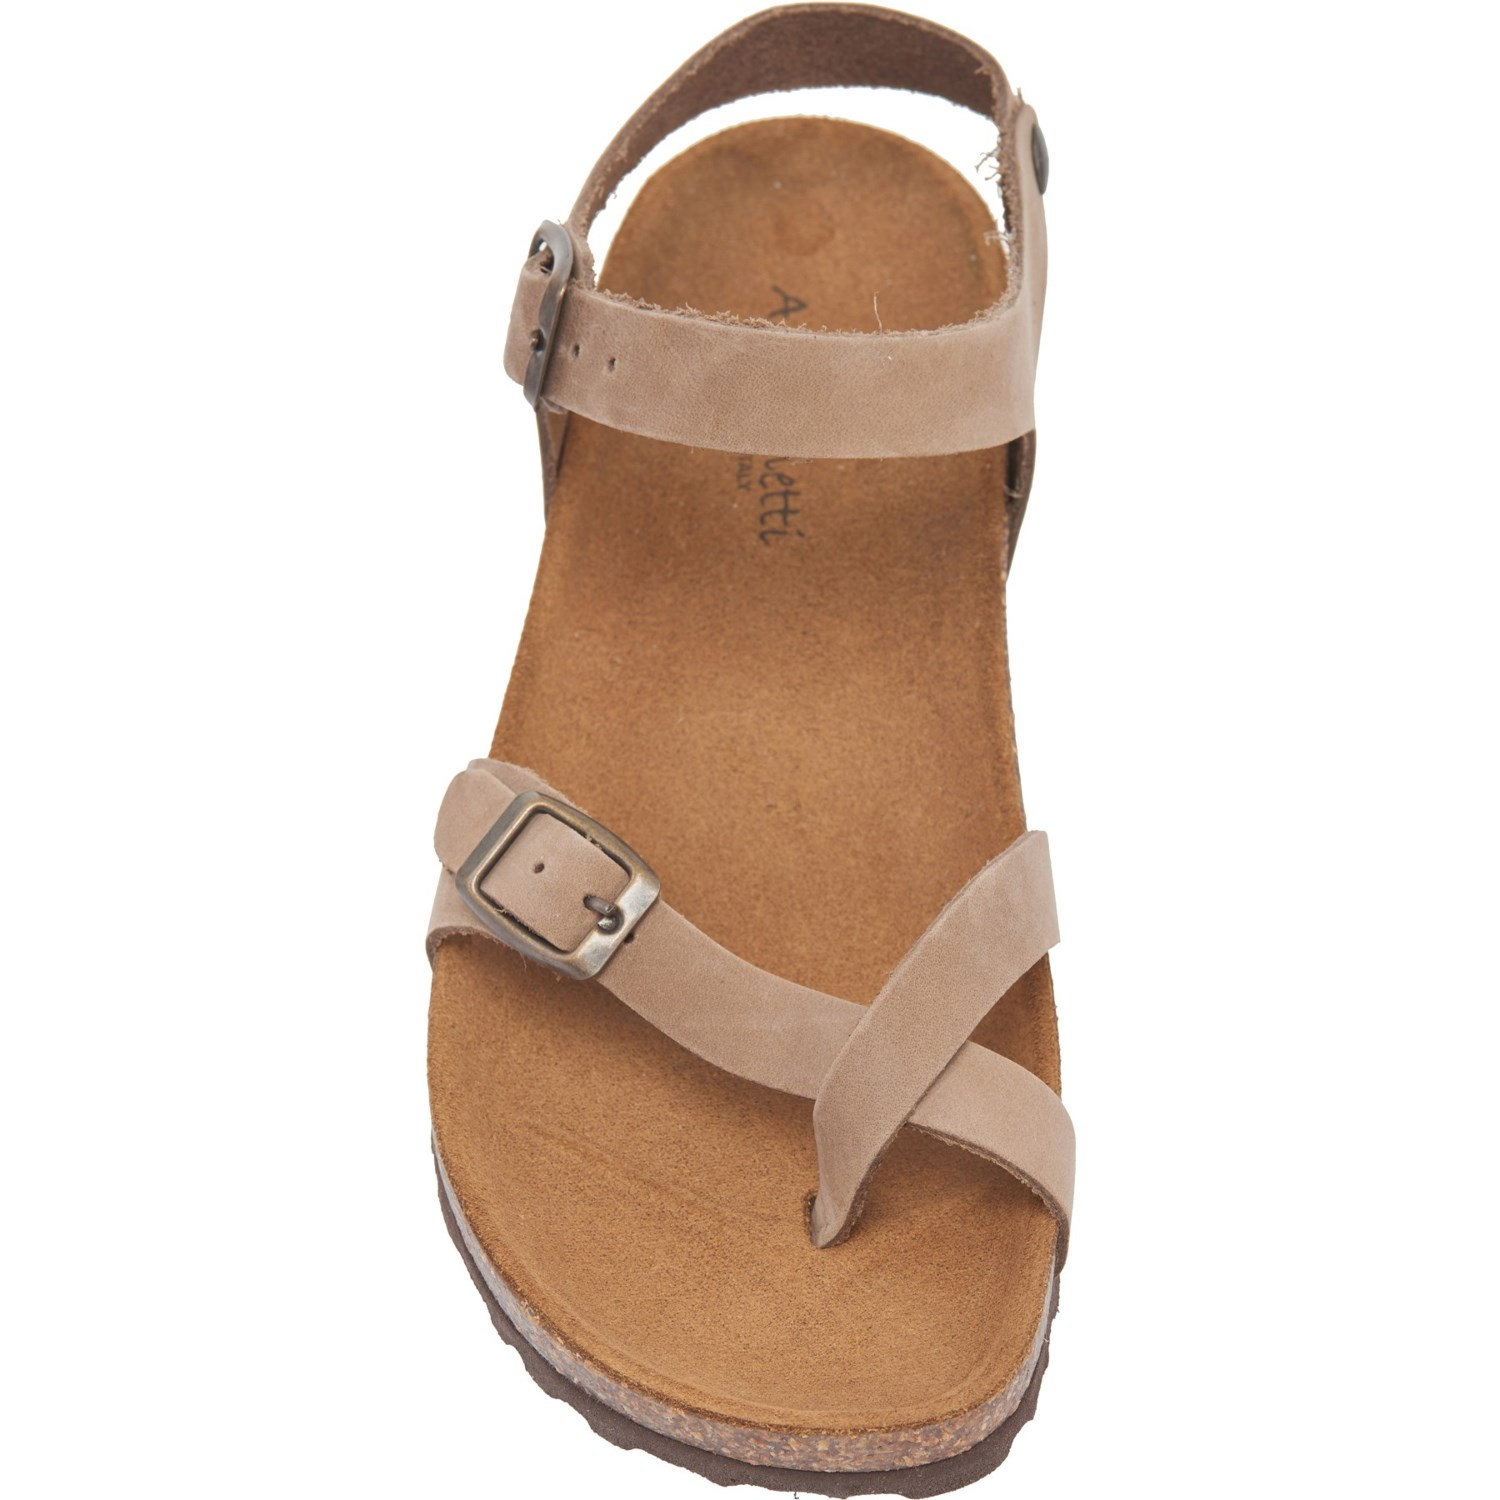 960e976154ba A. GIANNETTI Made in Italy Buckle Strap Sandals (For Women) - Save 40%